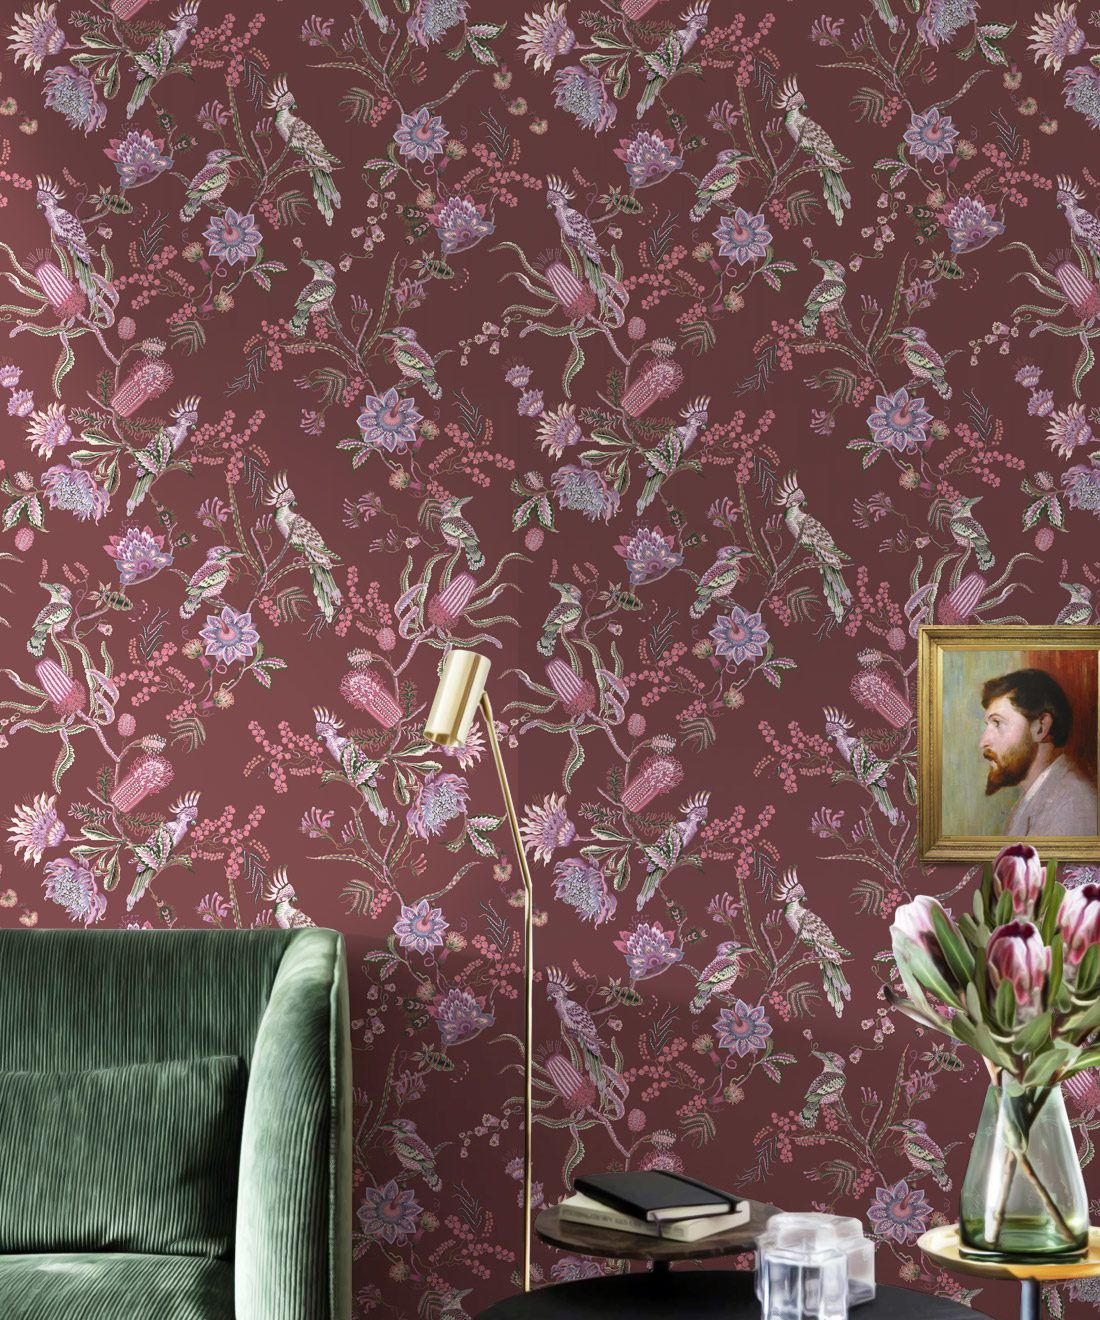 Matilda Wallpaper • Cockatoo, kookaburra • Australian Wallpaper • Milton & King USA • Plum Insitu